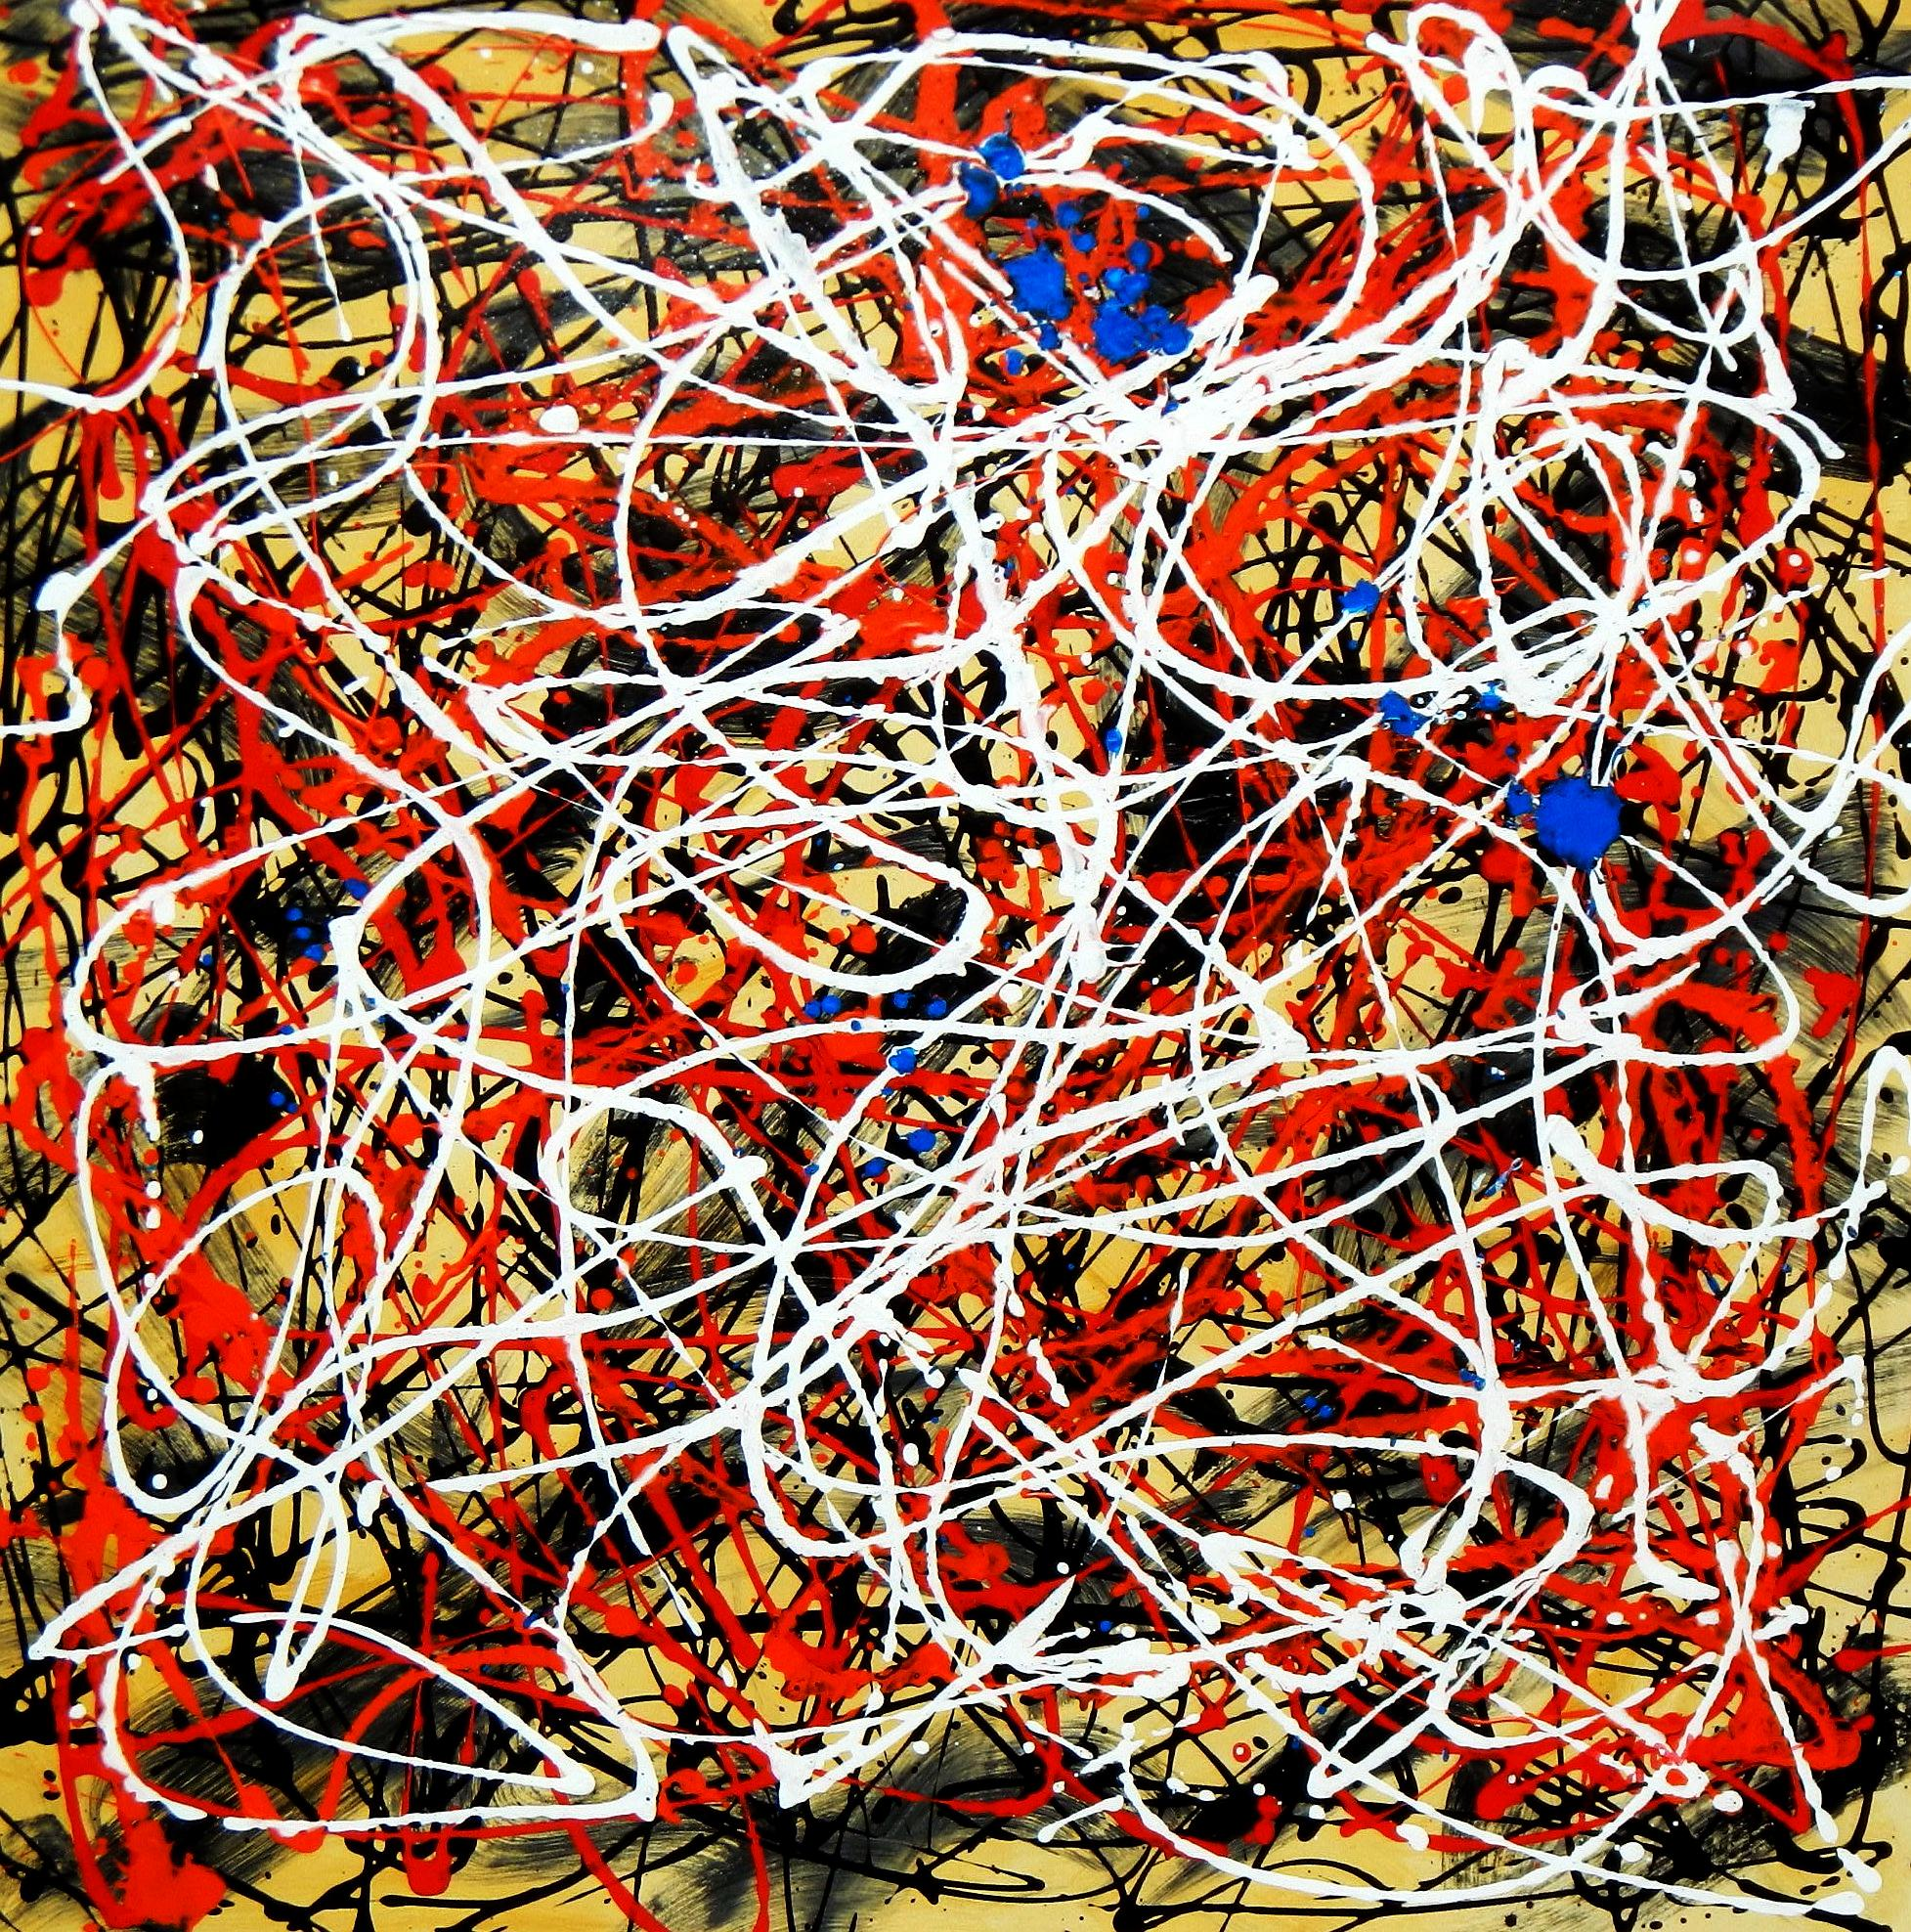 Homage of Pollock - Number 2 g94323 80x80cm abstraktes Ölbild